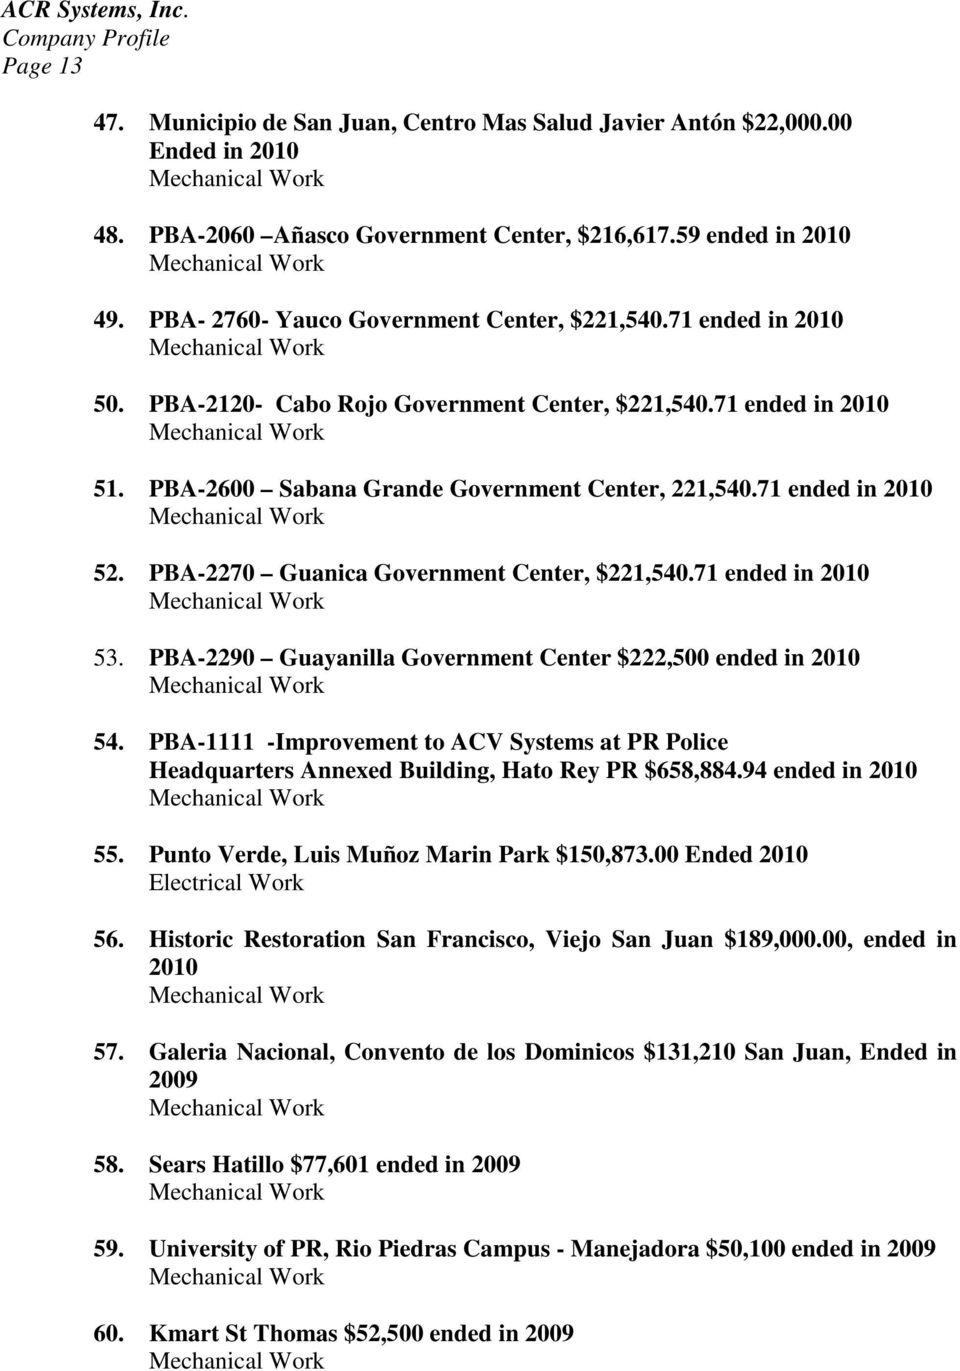 71 ended in 2010 52. PBA-2270 Guanica Government Center, $221,540.71 ended in 2010 53. PBA-2290 Guayanilla Government Center $222,500 ended in 2010 54.